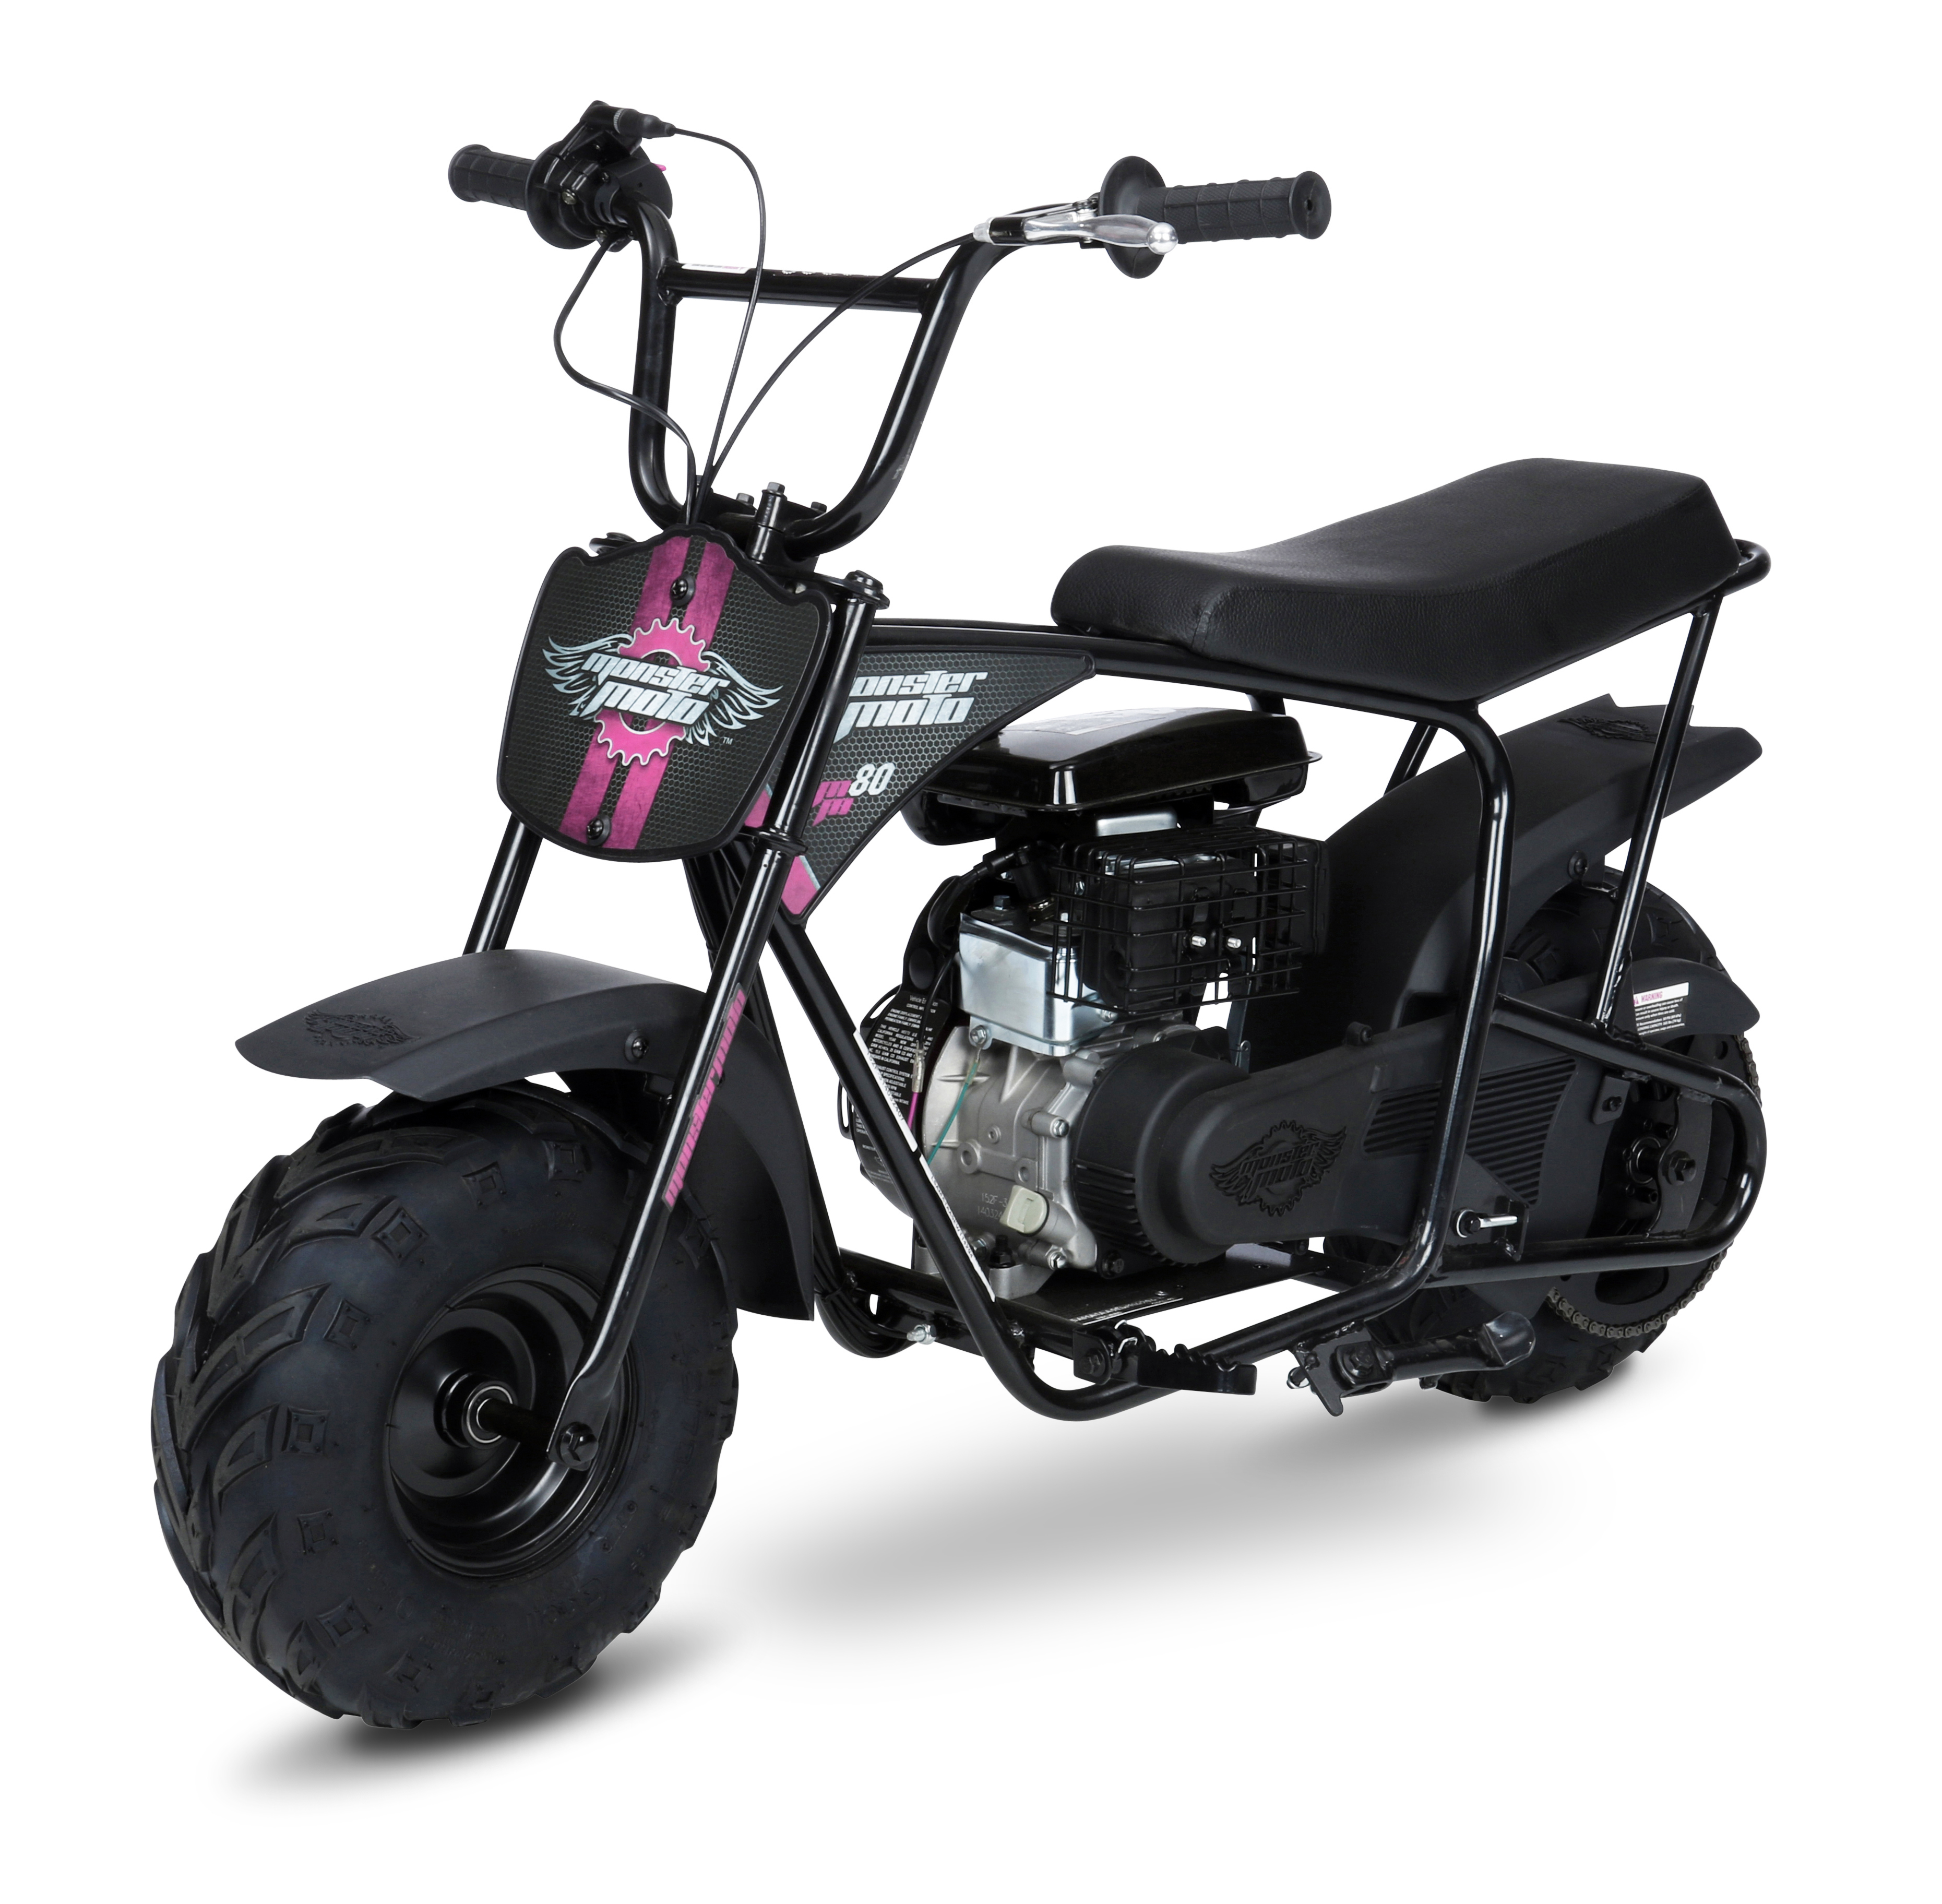 Mega Moto 80cc Mini Bike- Black with Red & Pink Decals